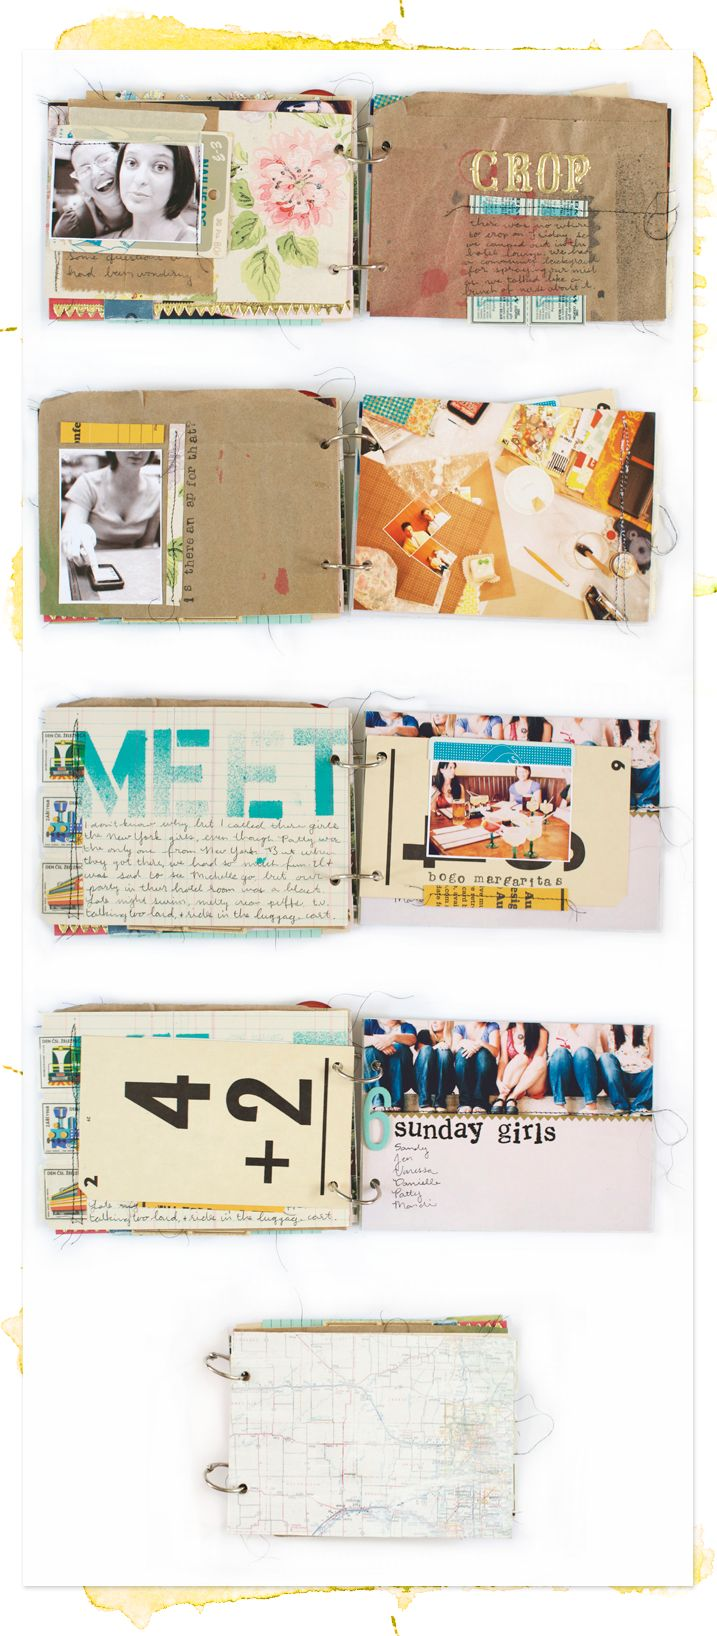 Road Trip Mini Book by Amanda Johnson at Here's Looking At Me Kid - Love the use of the brown lunch bag!